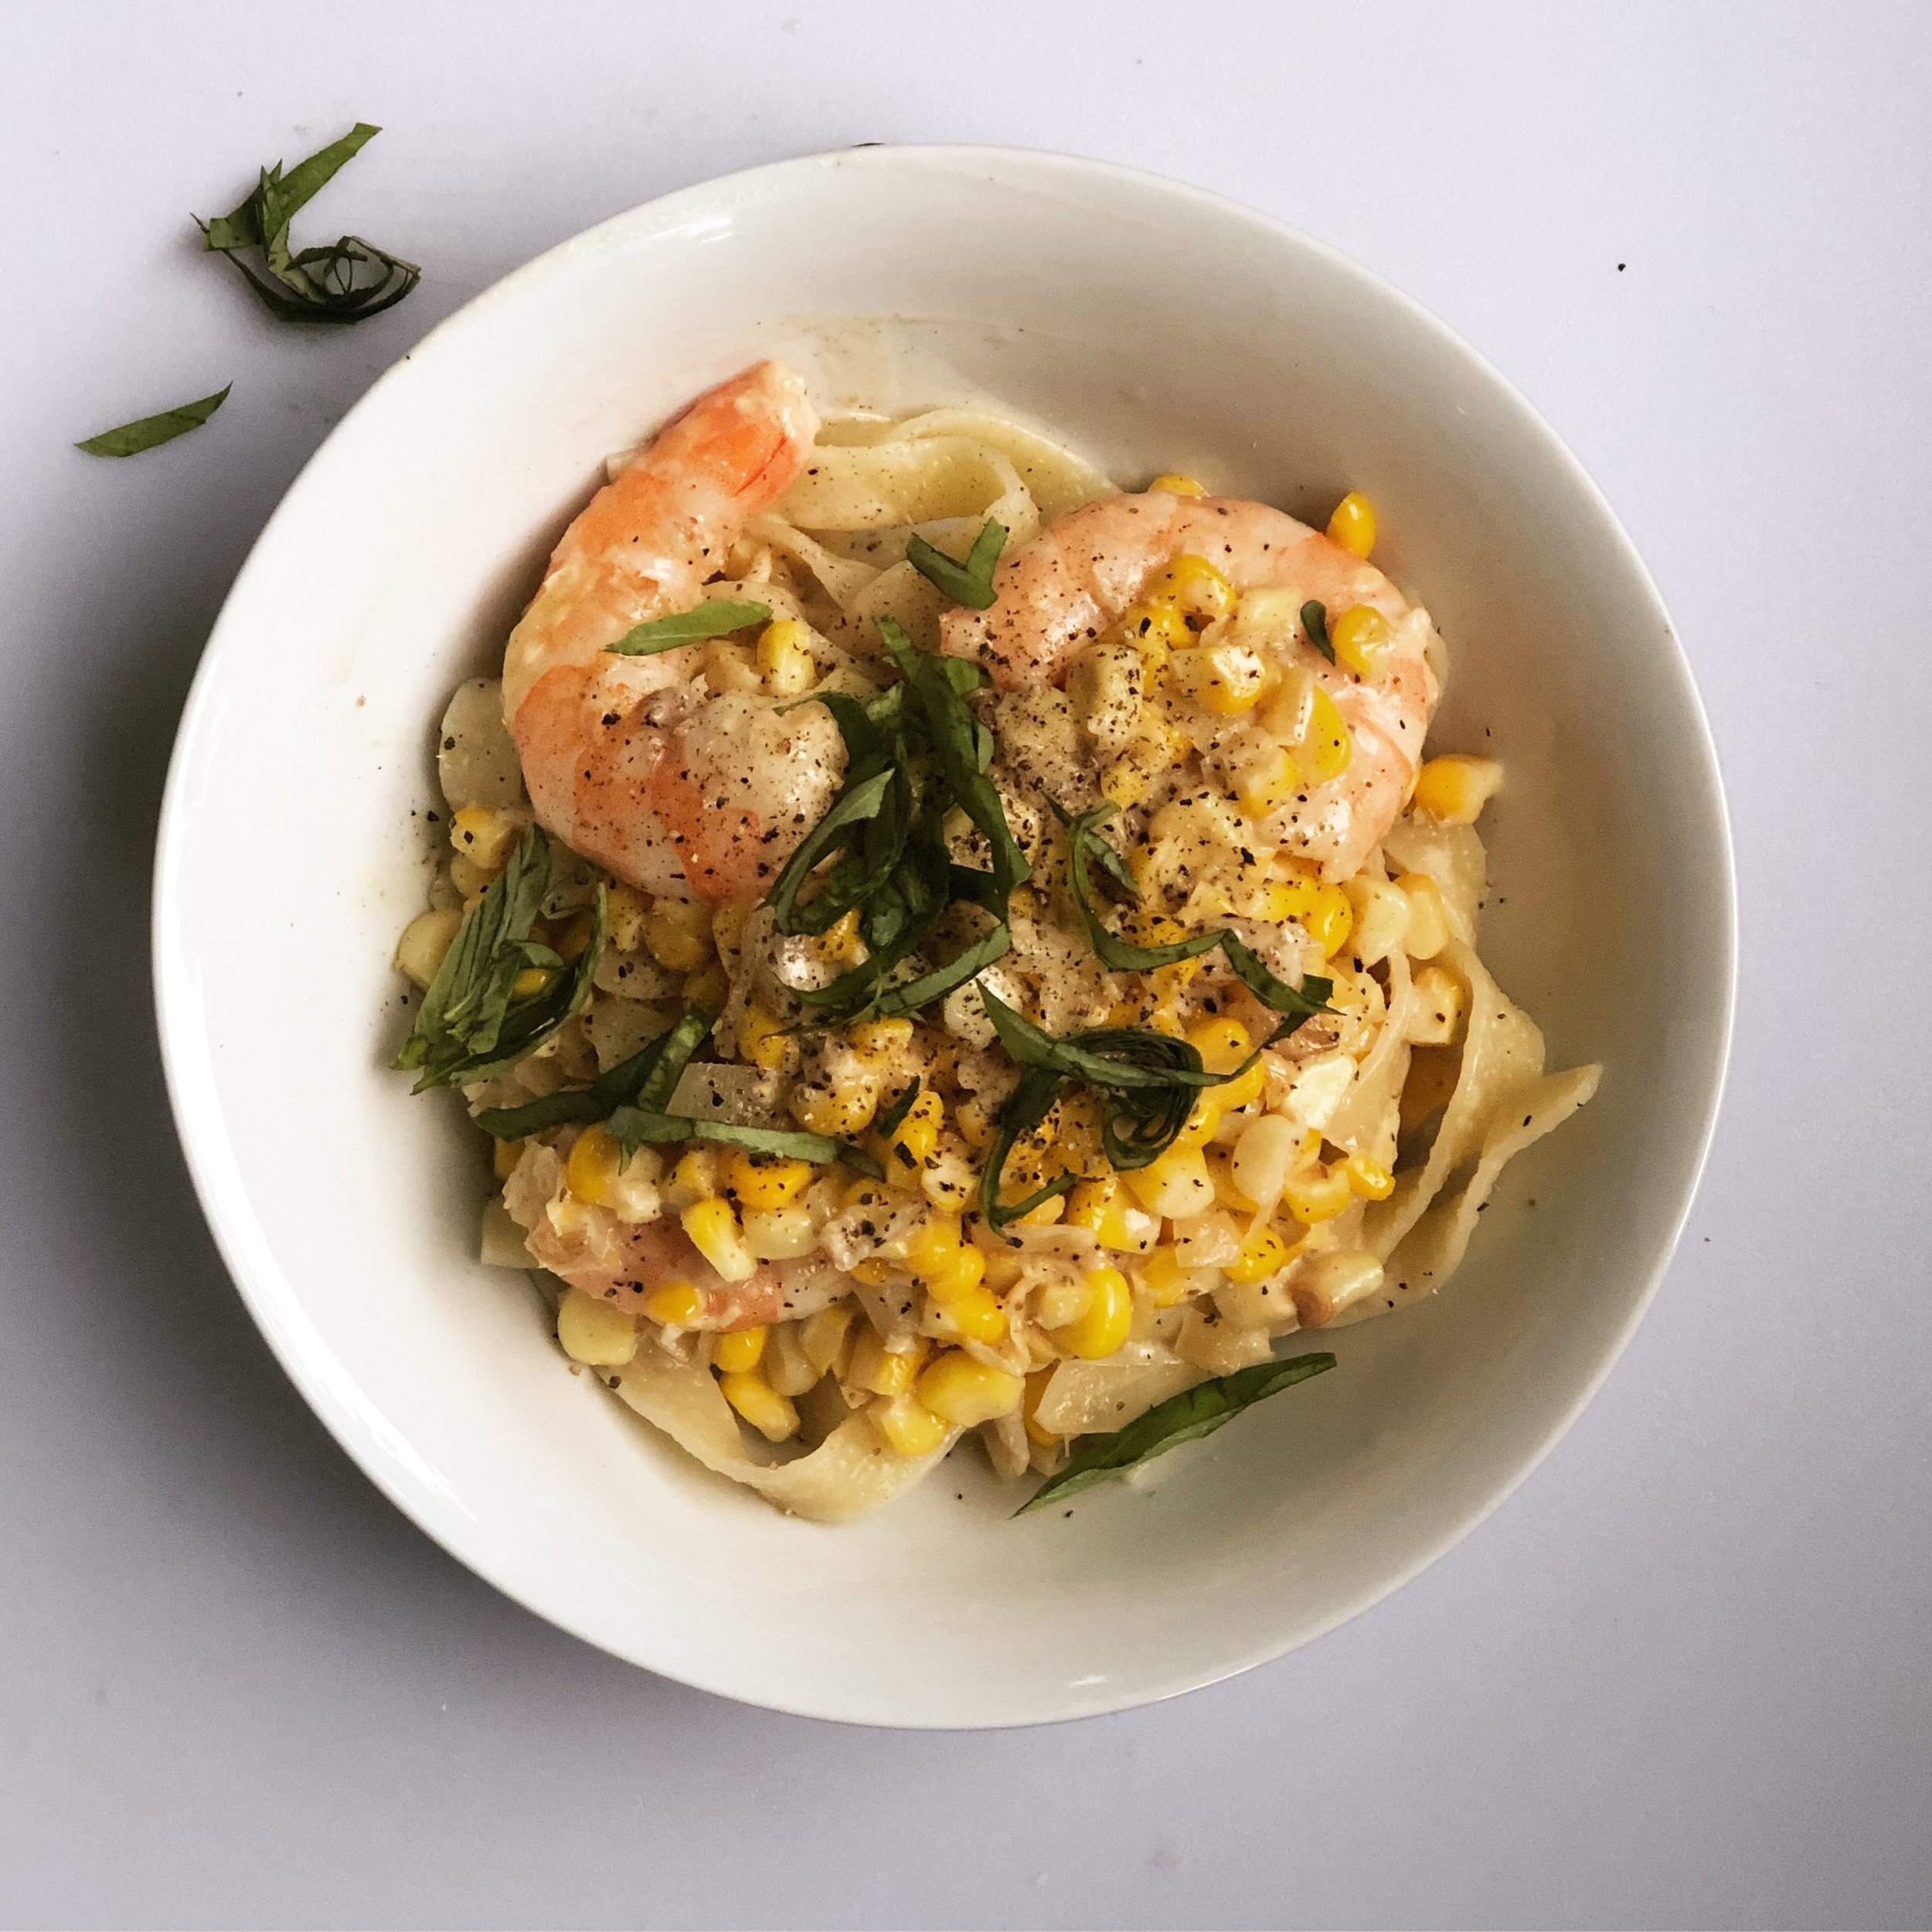 improv. corn & shrimp alfredo over tagliatelle, topped with garden basil and cracked pepper.